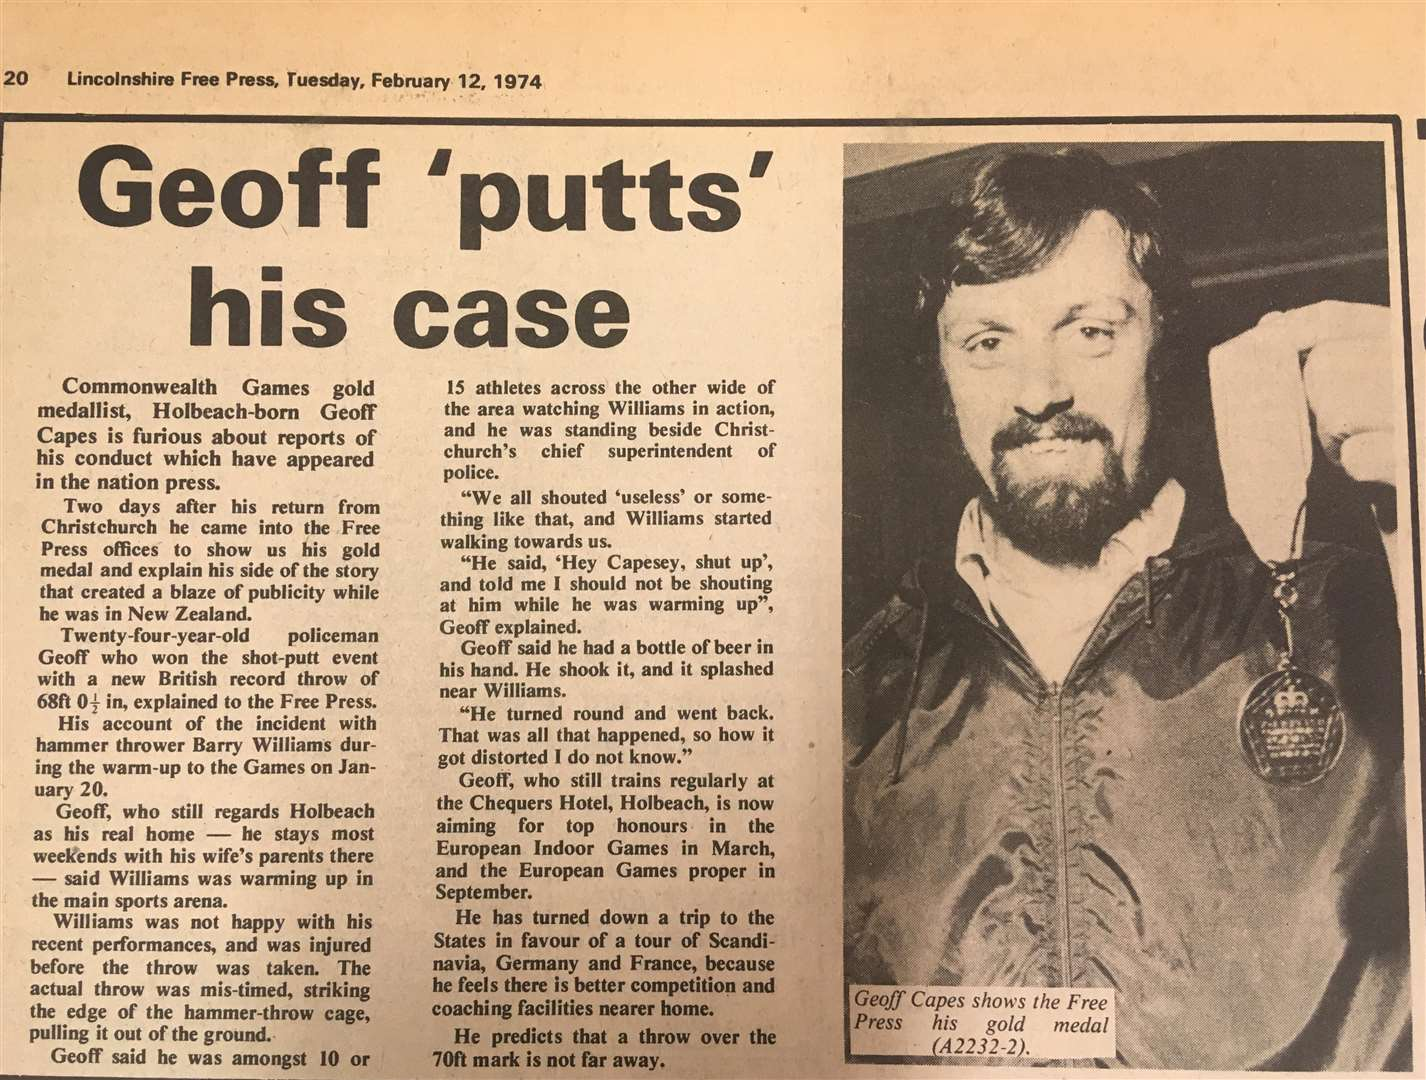 How the Lincolnshire Free Press reported Geoff Capes' gold medal at the 1974 Commonwealth Games